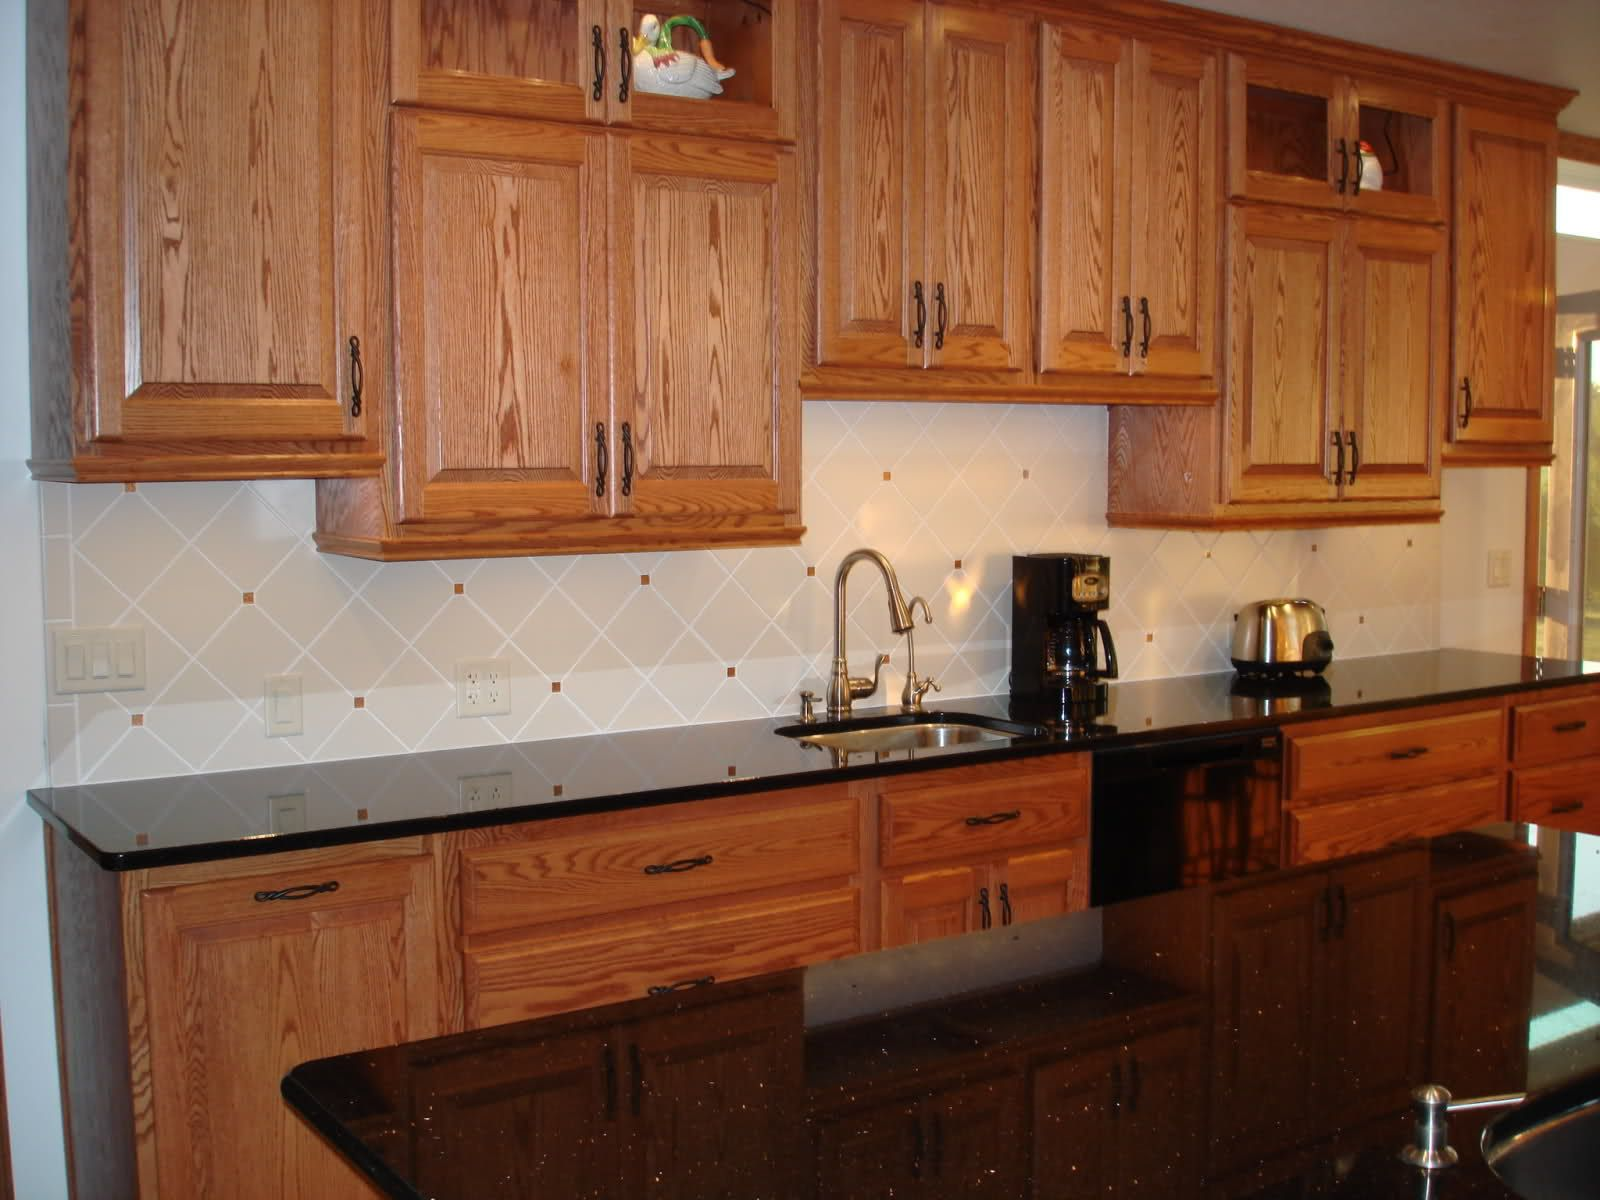 backsplash pictures with Oak cabinets and uba tuba granite | RE ...